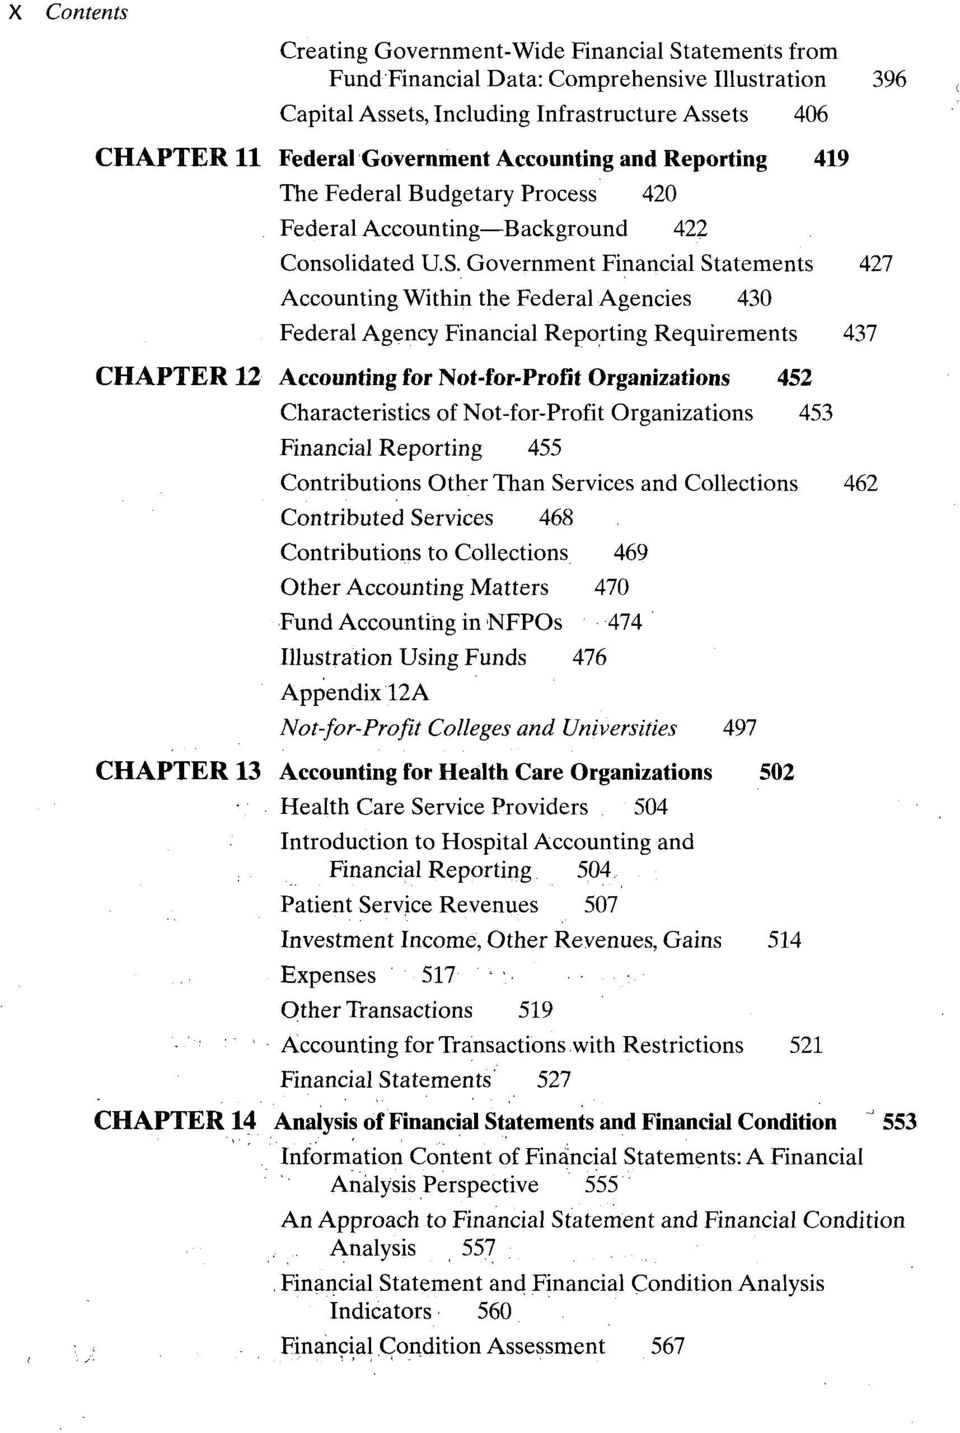 Government Financial Statements 427 Accounting Within the Federal Agencies 430 Federal Agency Financial Reporting Requirements 437 CHAPTER 12 Accounting for Not-for-Profit Organizations 452